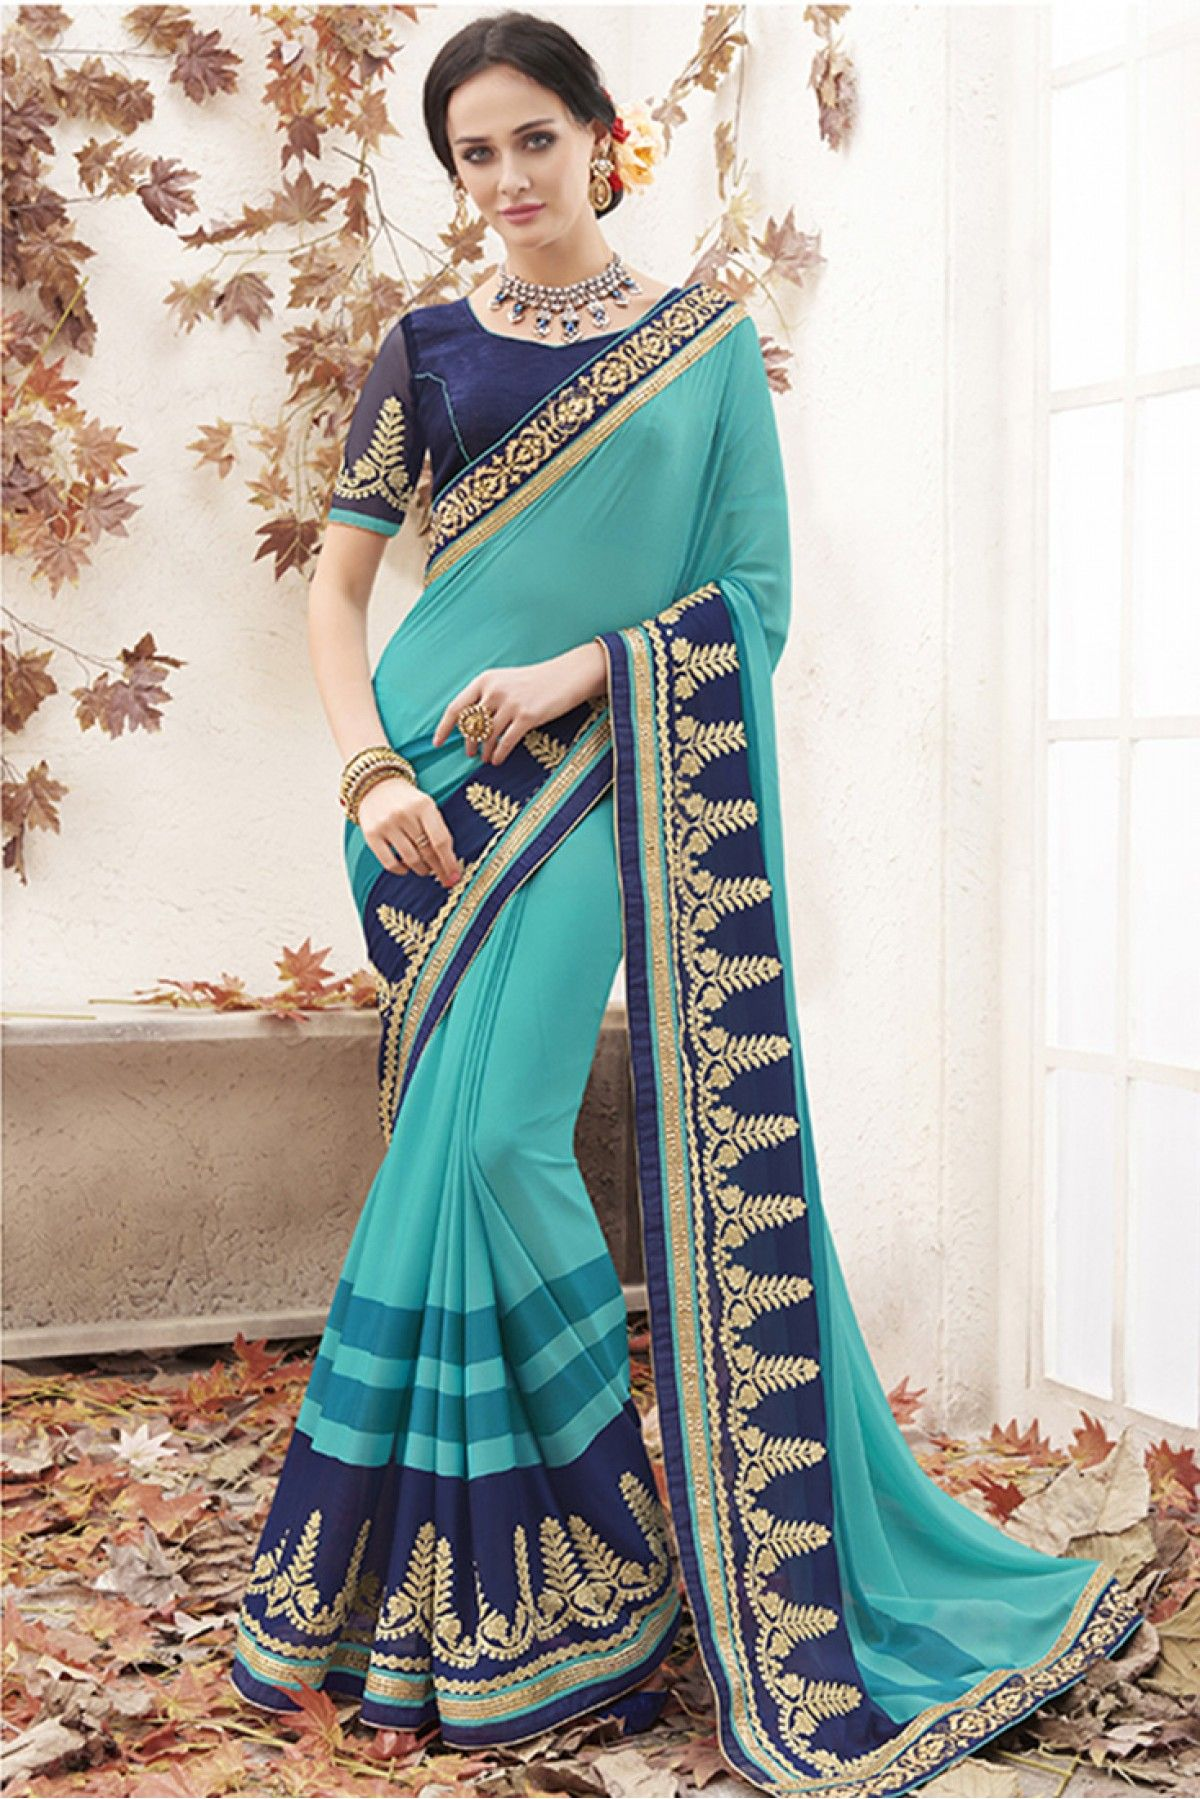 76b5ba8a26137 Sky Blue Colour Georgette Fabric Party Wear Designer Saree Comes With  Matching Blouse. This Saree Is Crafted With Lace Work.